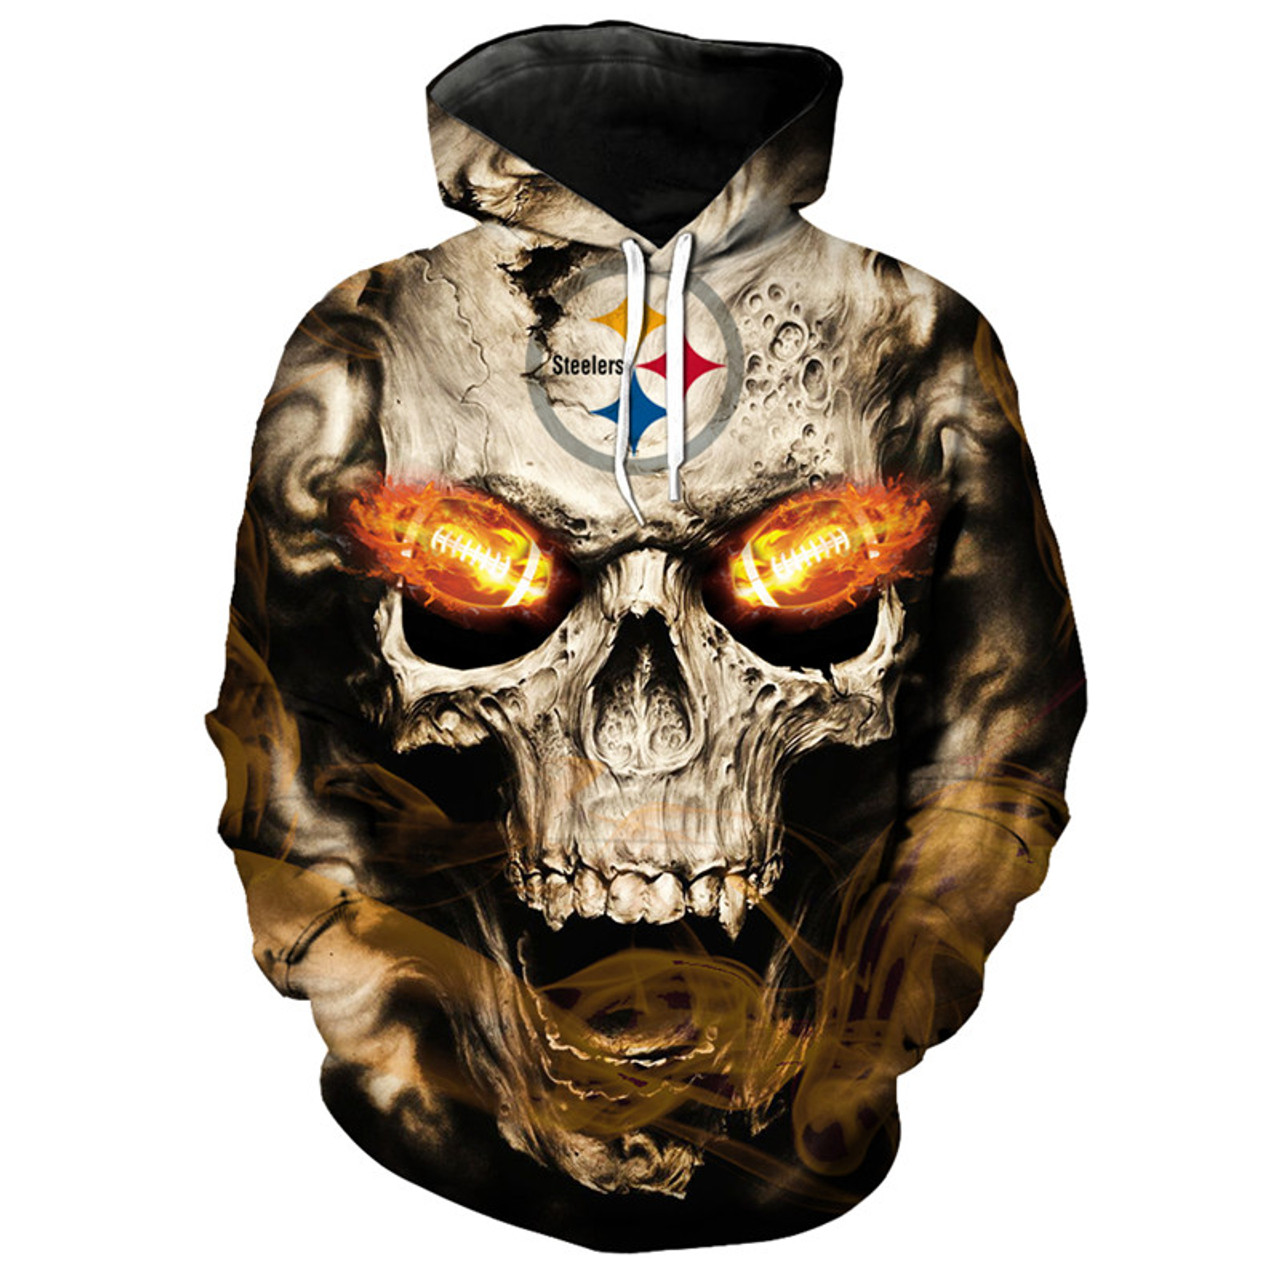 buy popular b42f2 08d7f **(OFFICIAL-N.F.L.PITTSBURGH-STEELERS-LOGO/3D-NEON-SKULL &  PITTSBURGH-STEELERS-BLAZING-FIERY-FOOTBALL-IN-SKULLS-EYES,PREMIUM-3D-GRAPHIC-PRINTED/DOUBLE...